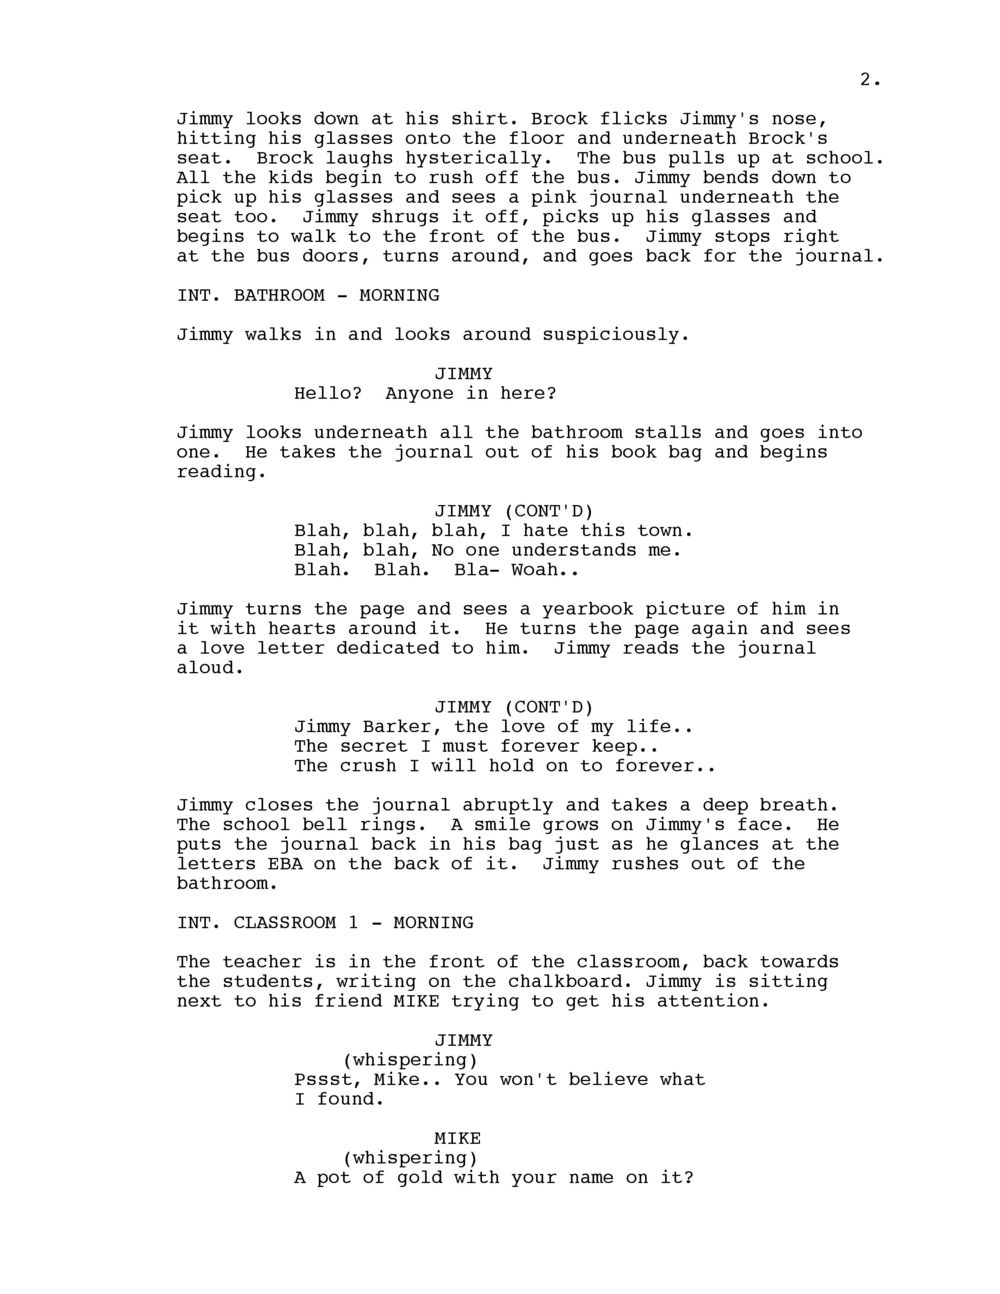 Script - The Pink Journal-2.jpg